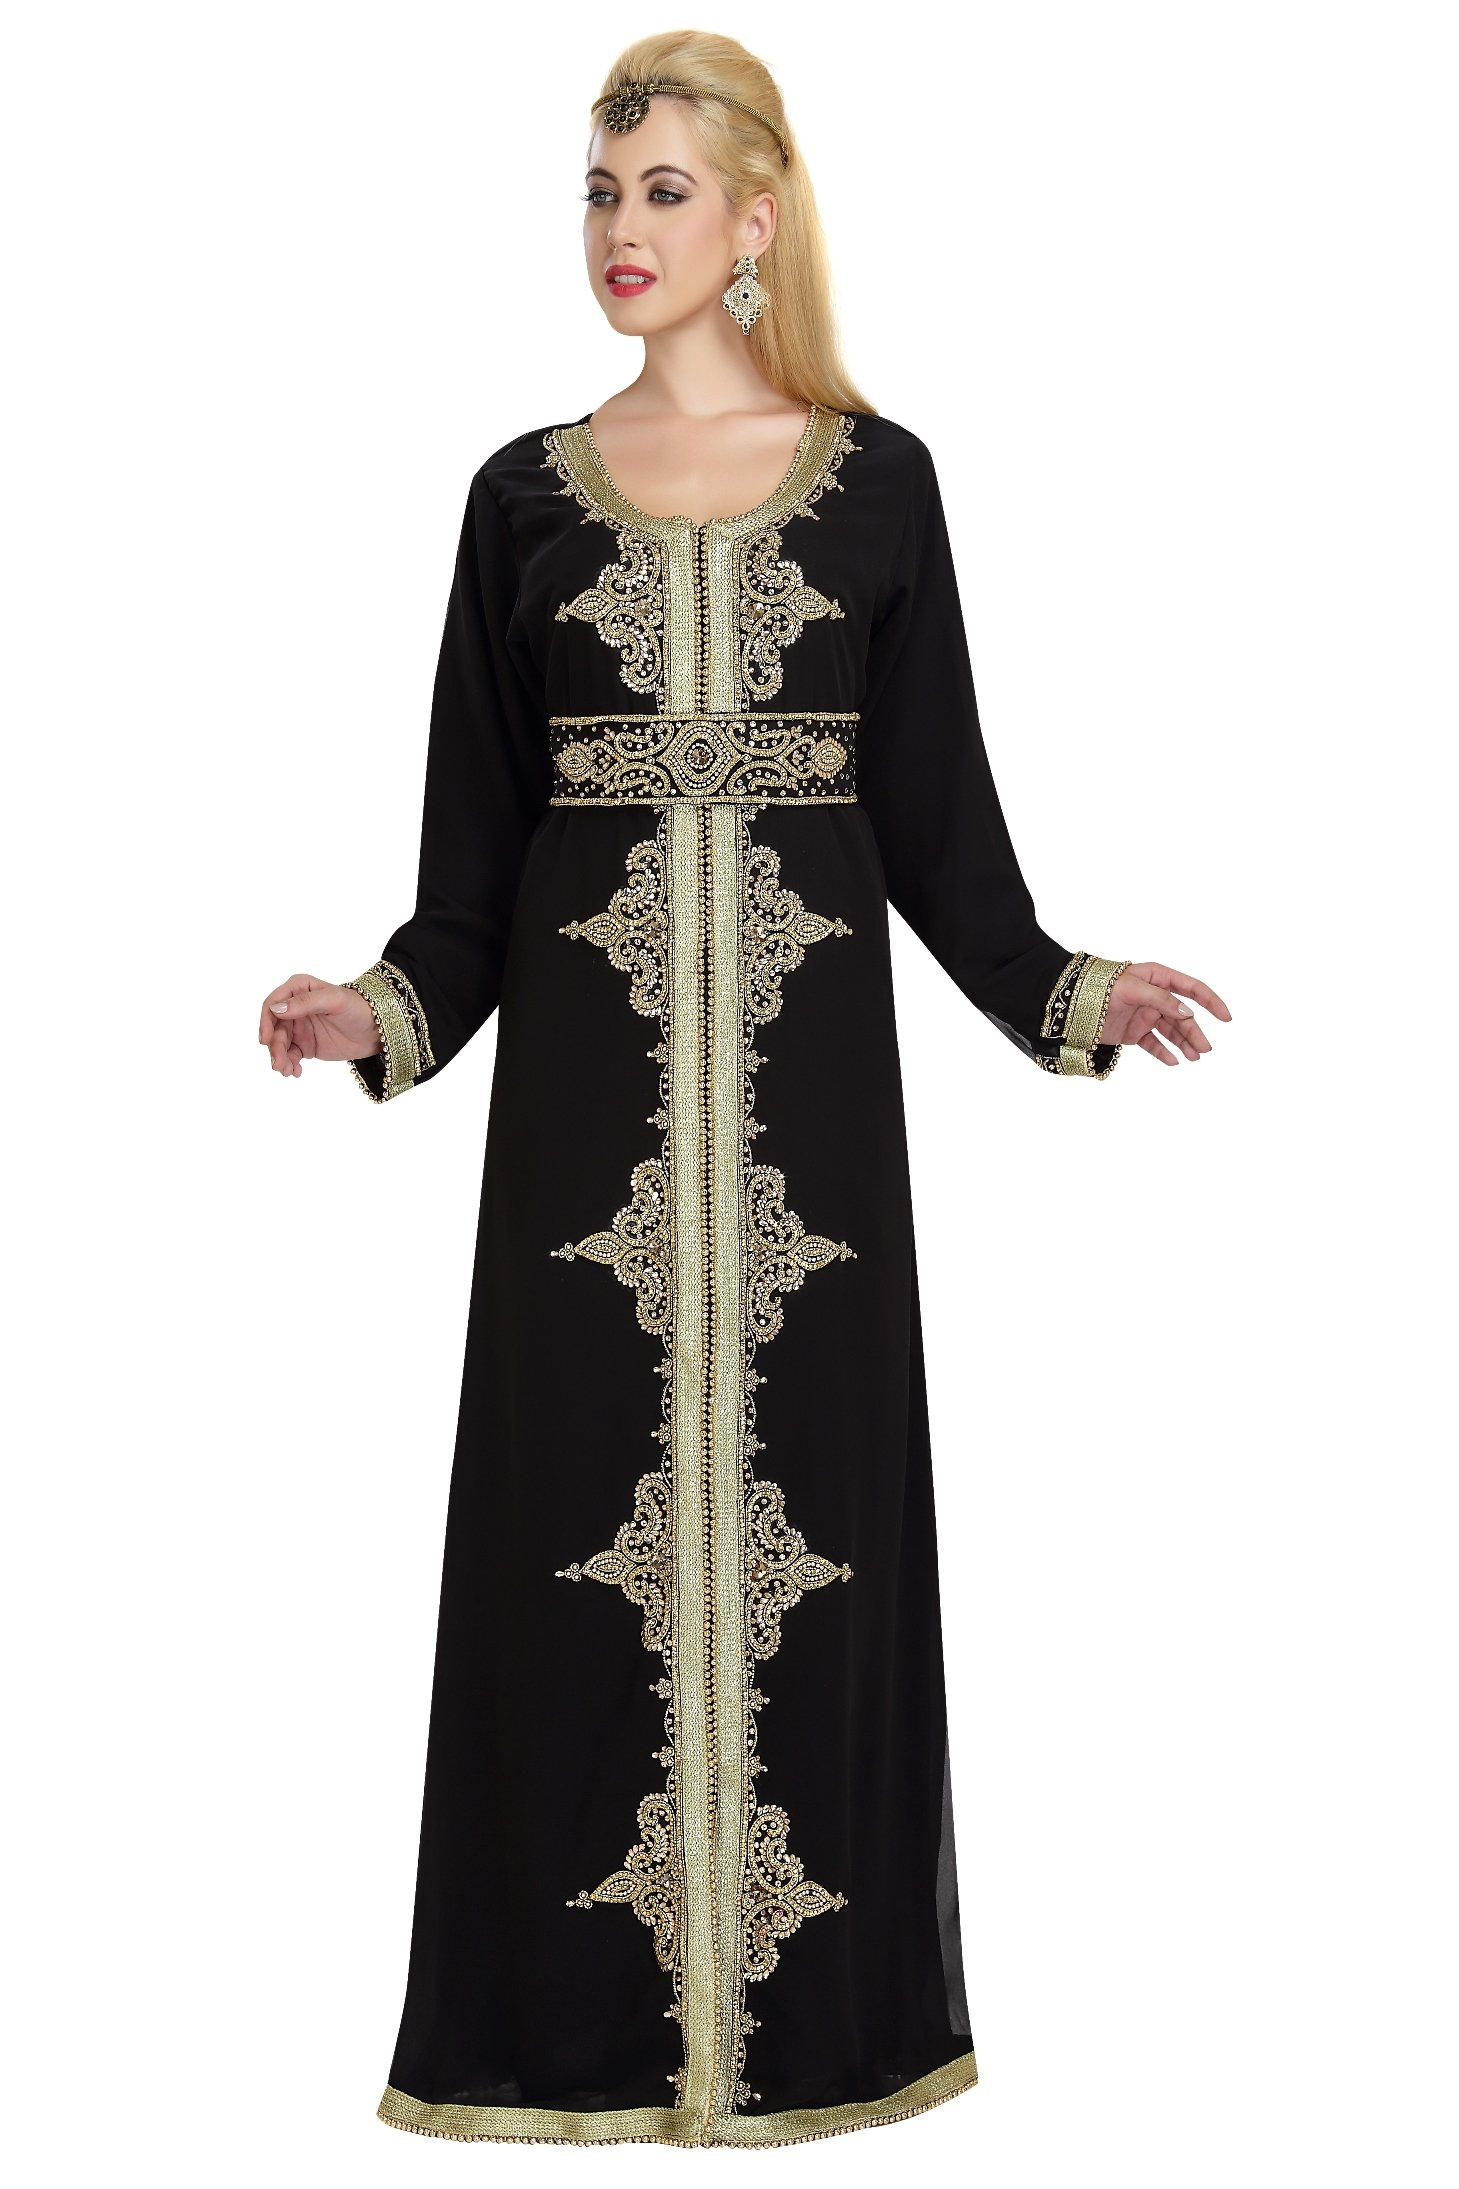 Arabian Evening Wear Abaya Caftan For Regular Use By Maxim Creation 5872 (4XL)